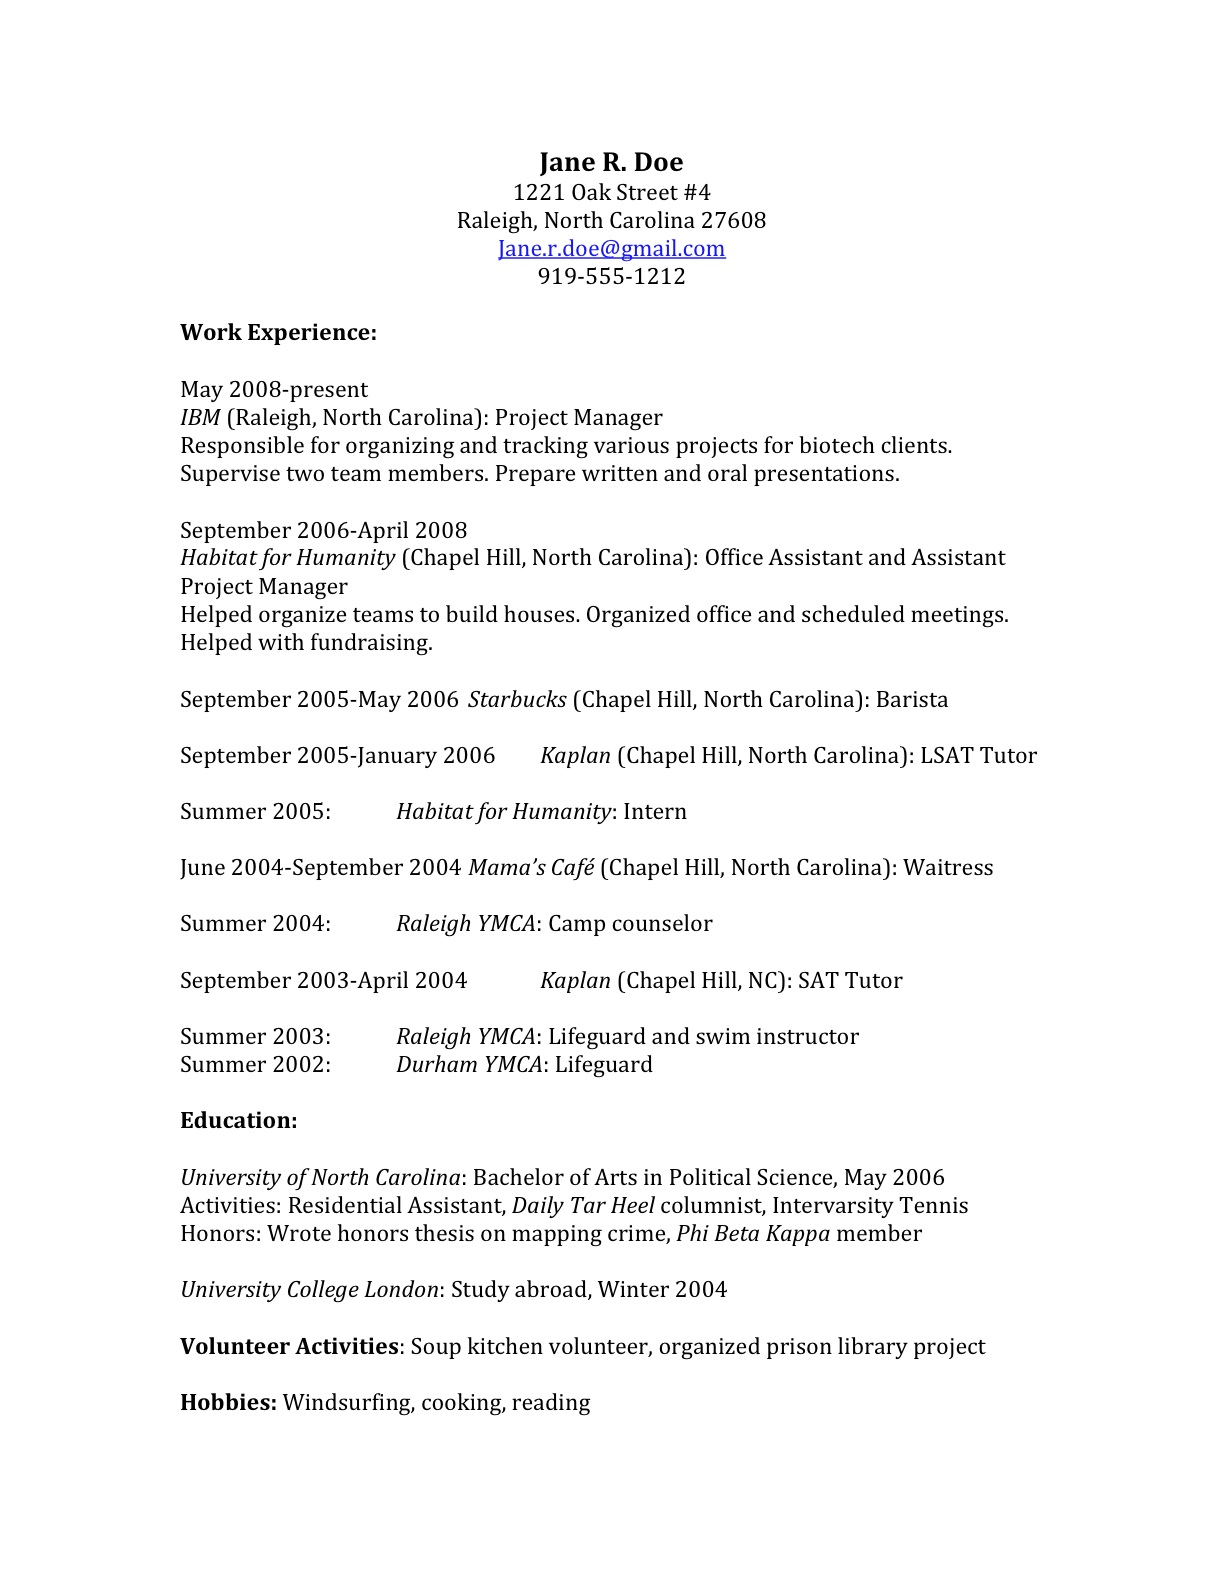 Resume Admission Resume Sample how to craft a law school application that gets you in sample jane does starting resume